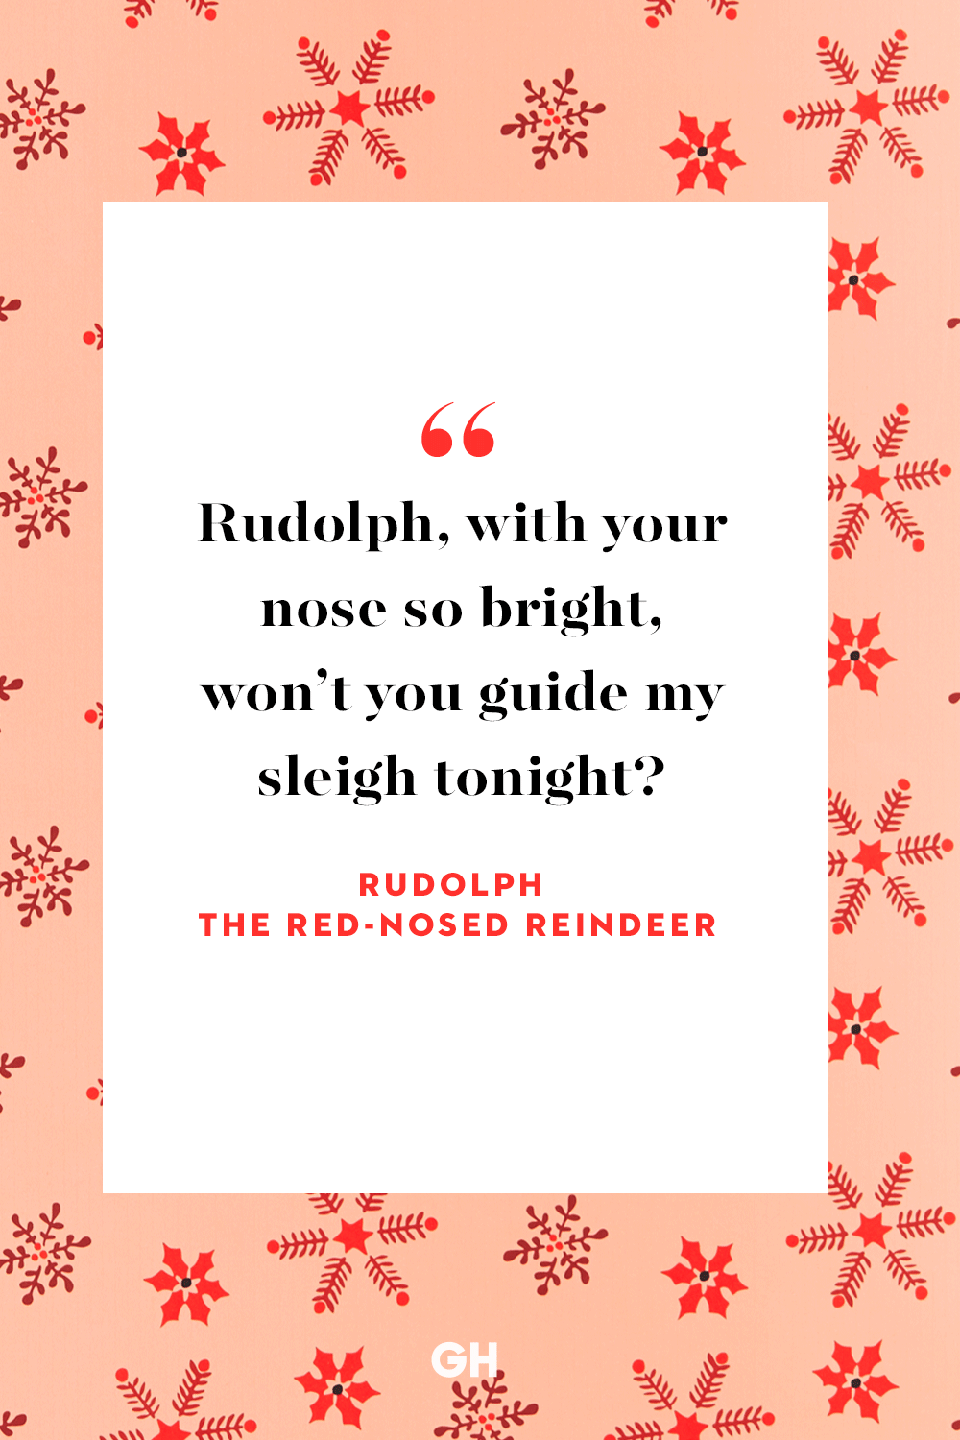 <p>Rudolph, with your nose so bright, won't you guide my sleigh tonight?</p>